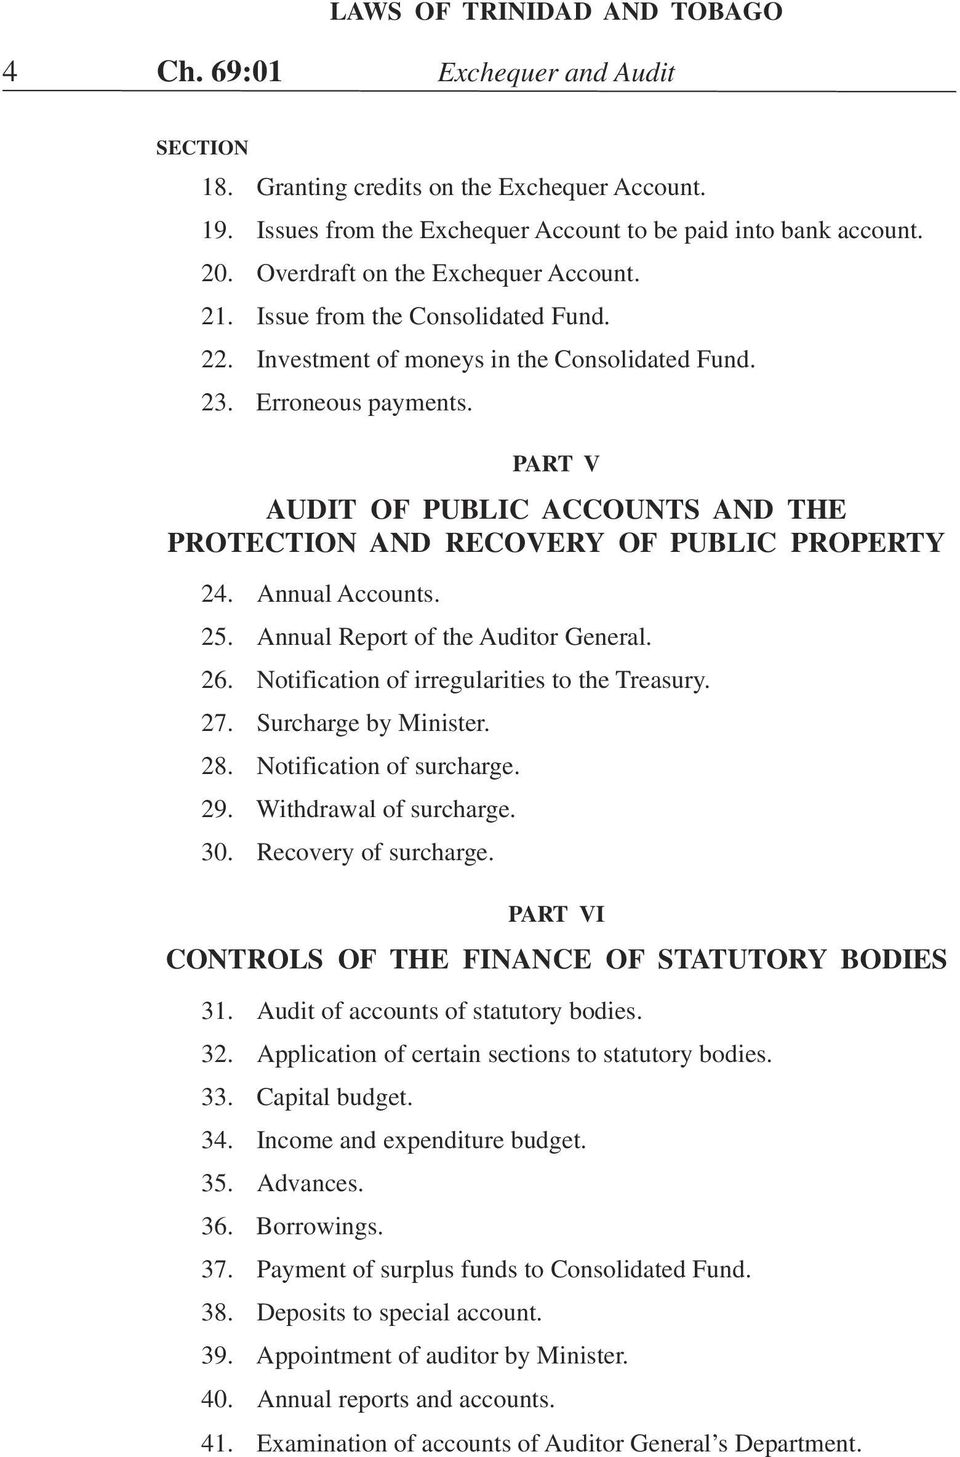 PART V AUDIT OF PUBLIC ACCOUNTS AND THE PROTECTION AND RECOVERY OF PUBLIC PROPERTY 24. Annual Accounts. 25. Annual Report of the Auditor General. 26. Notification of irregularities to the Treasury.